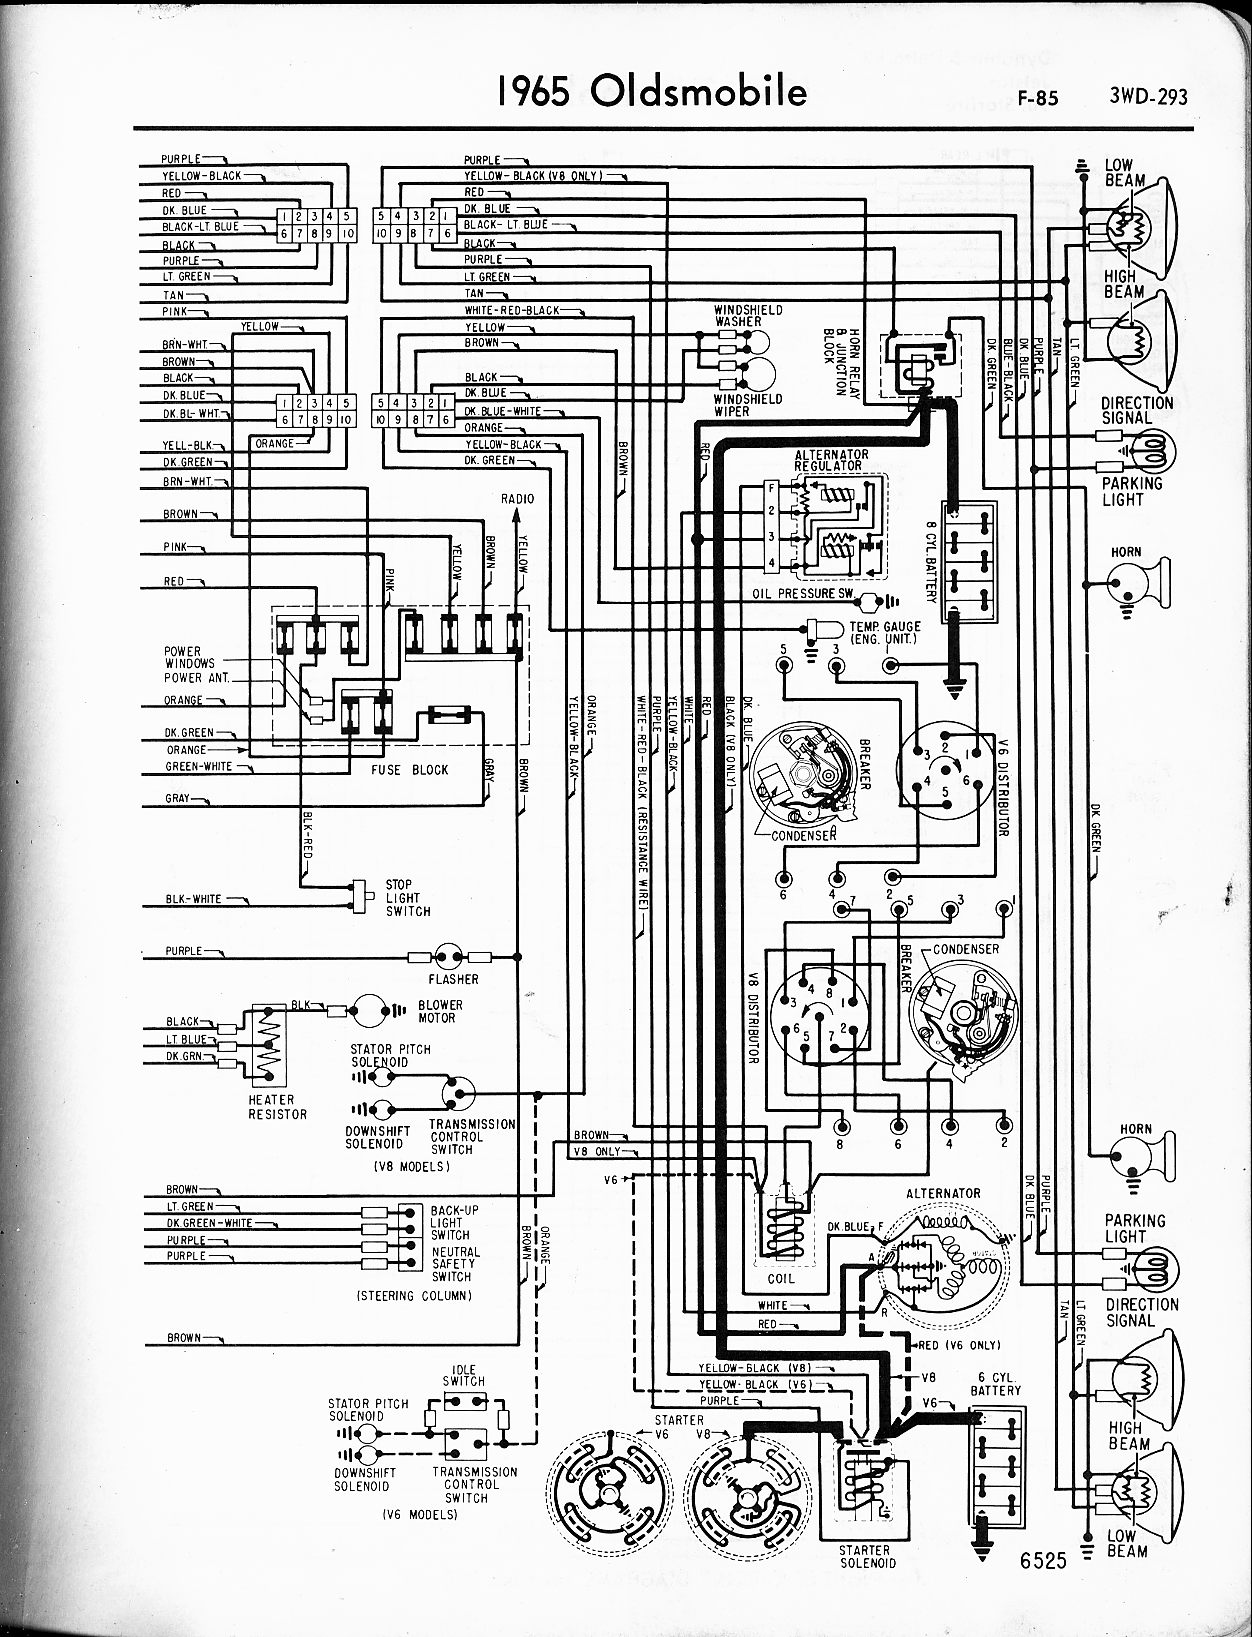 oldsmobile wiring diagrams the old car manual project rh oldcarmanualproject com Oldsmobile Steering Diagrams Oldsmobile Steering Diagrams